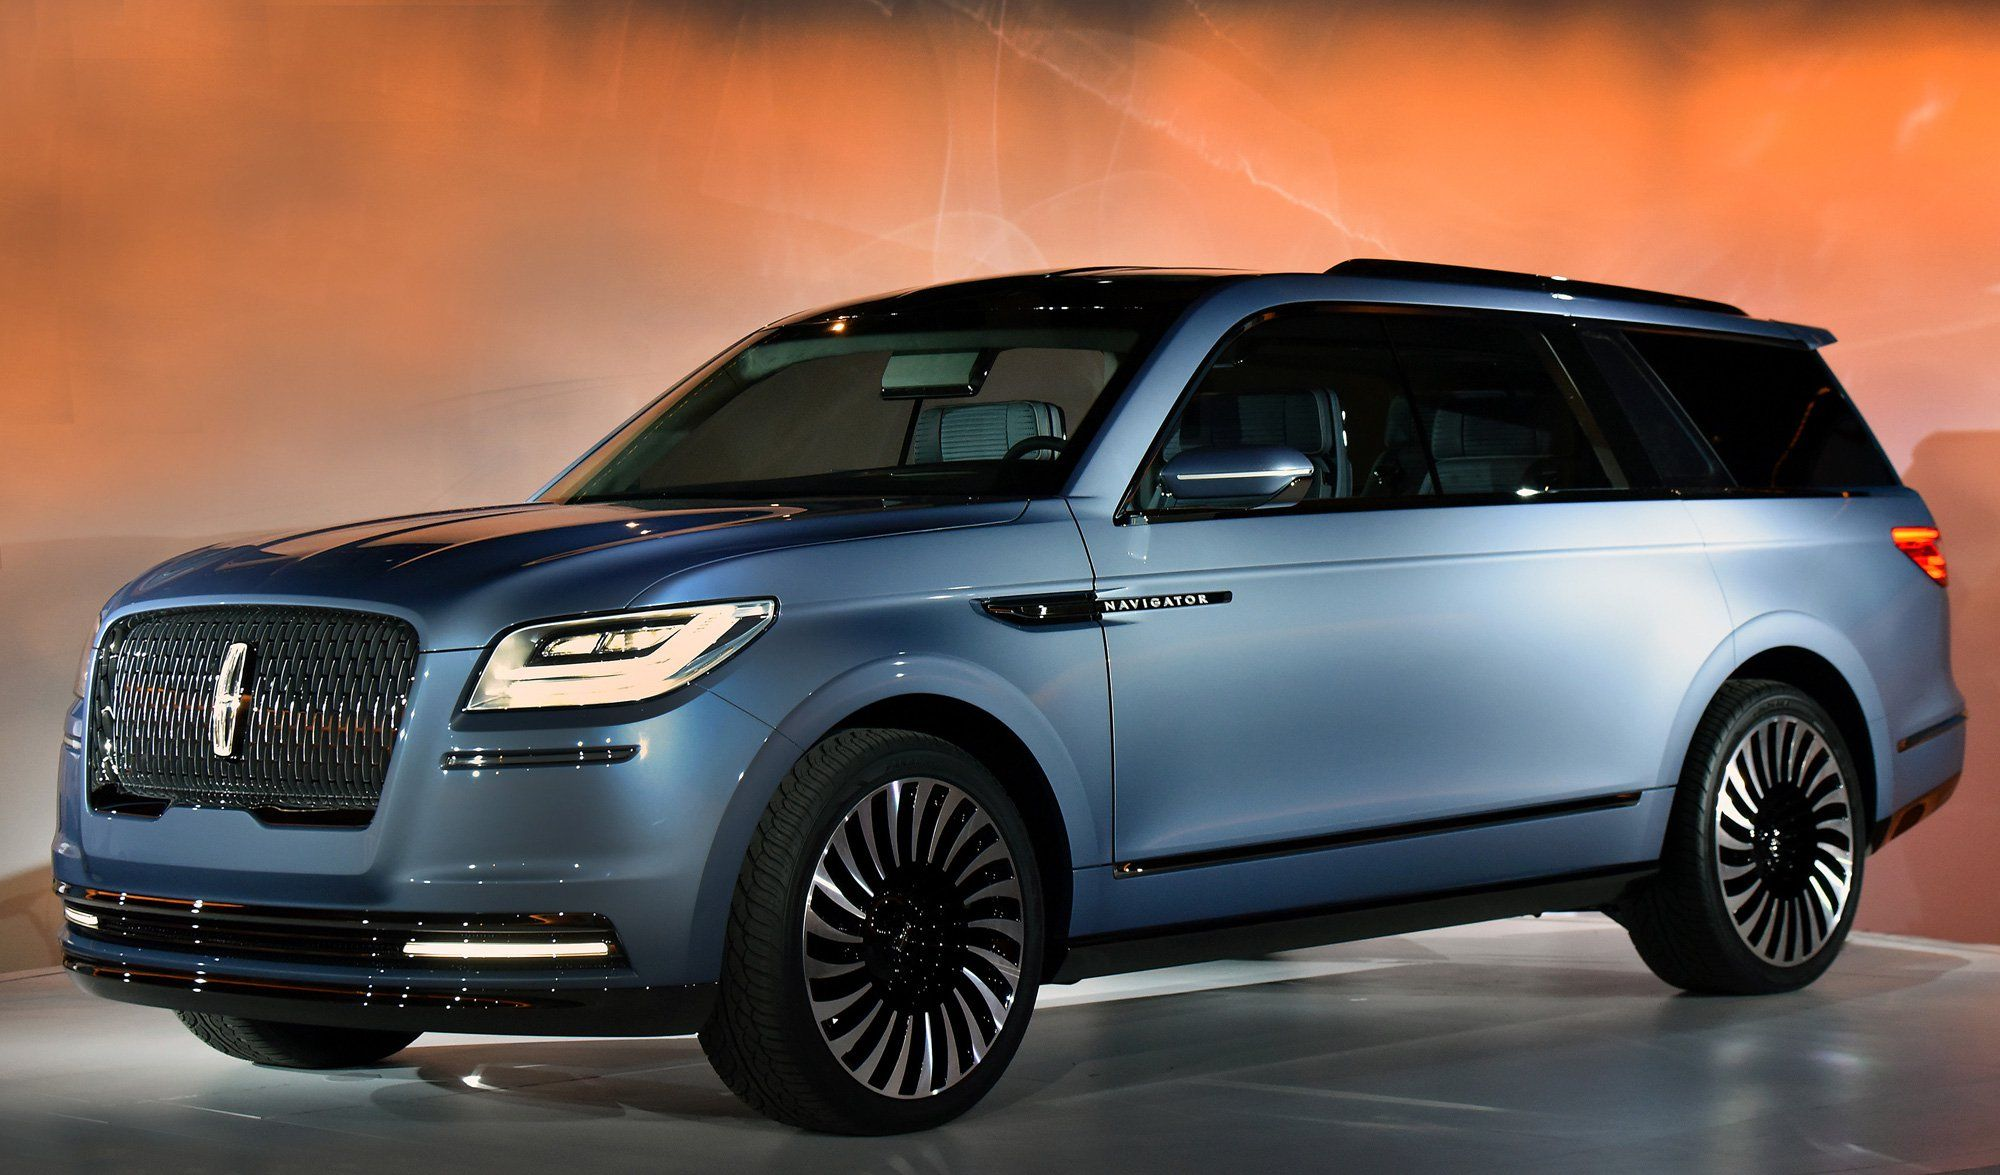 2018 Lincoln Navigator Concept is an Outrageous SUV with Sports ...